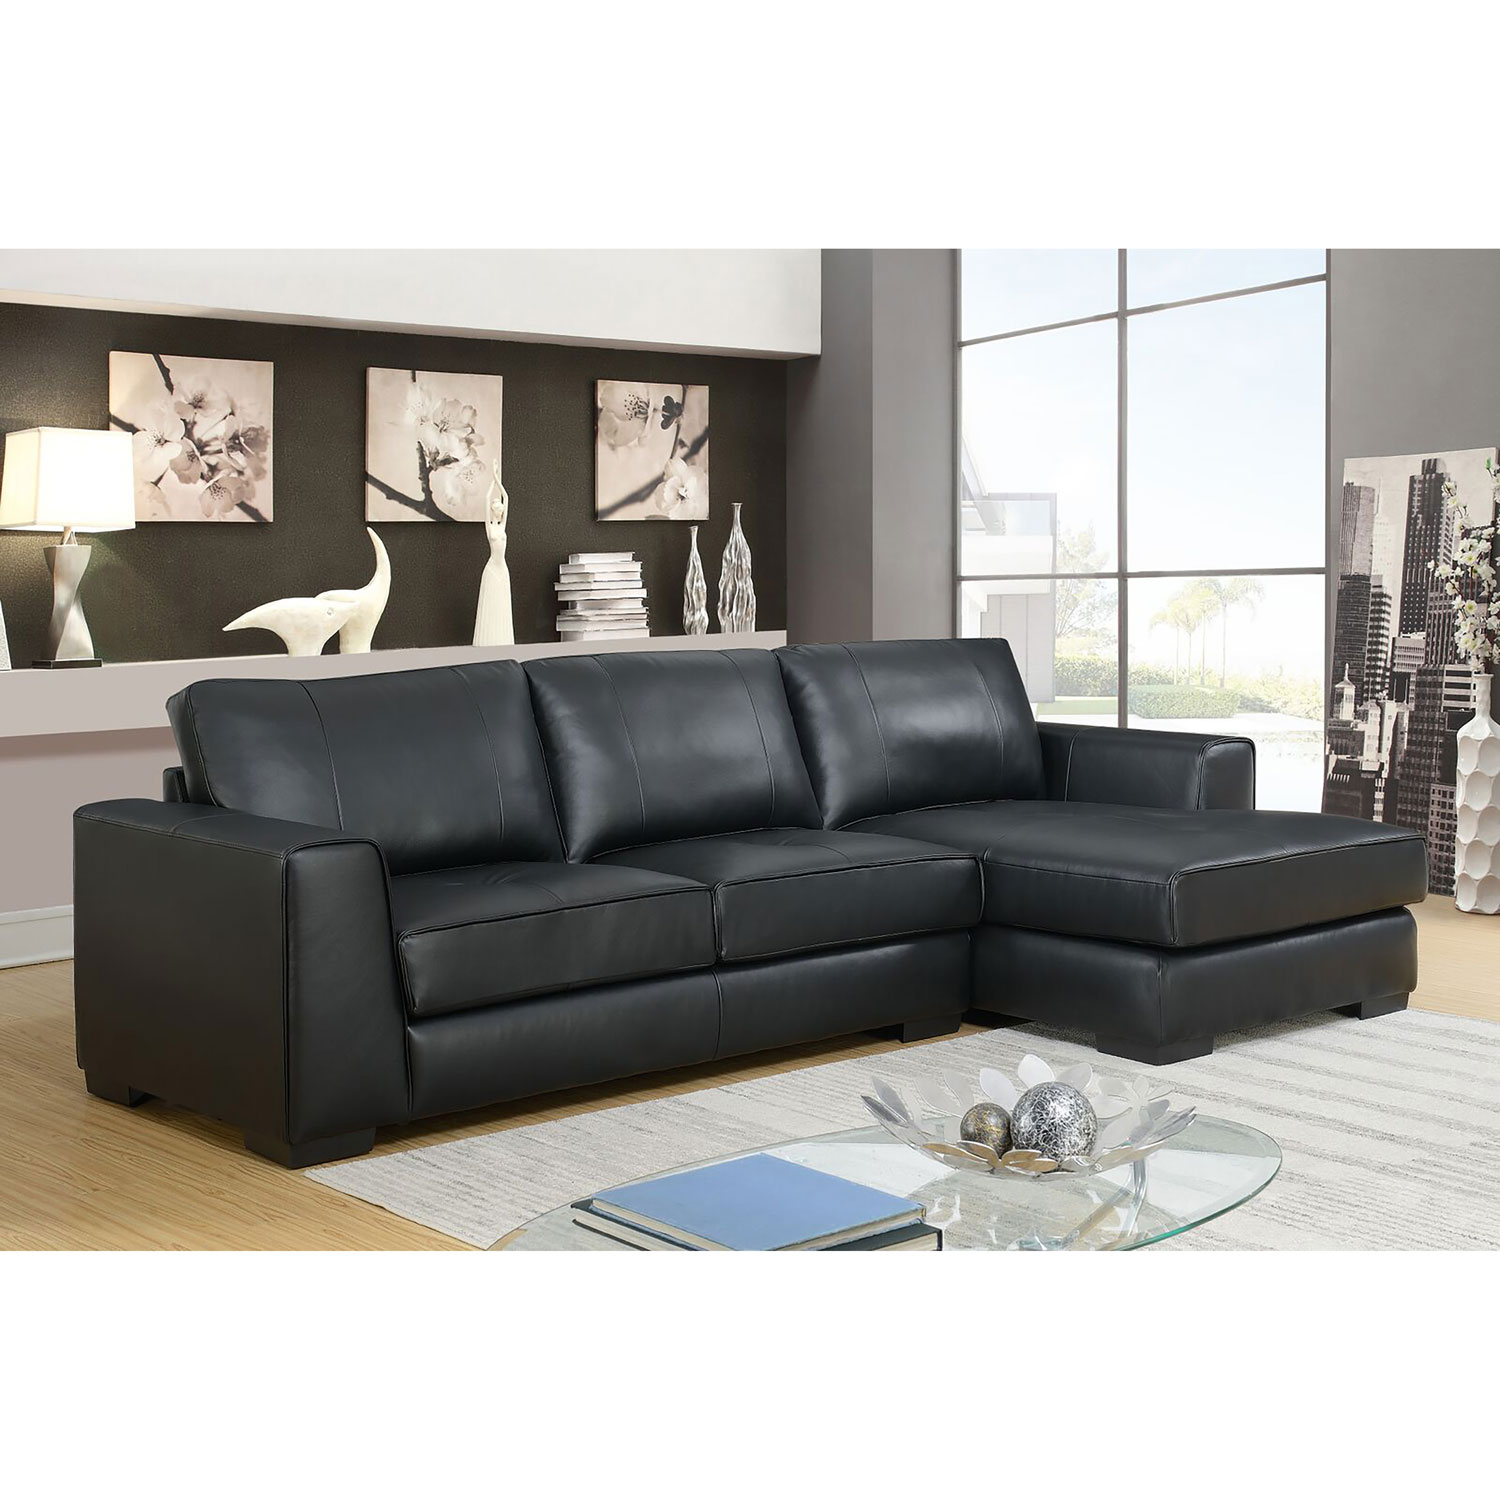 Concise contemporary 2 piece genuine leather sectional sofa with right facing chaise black online only